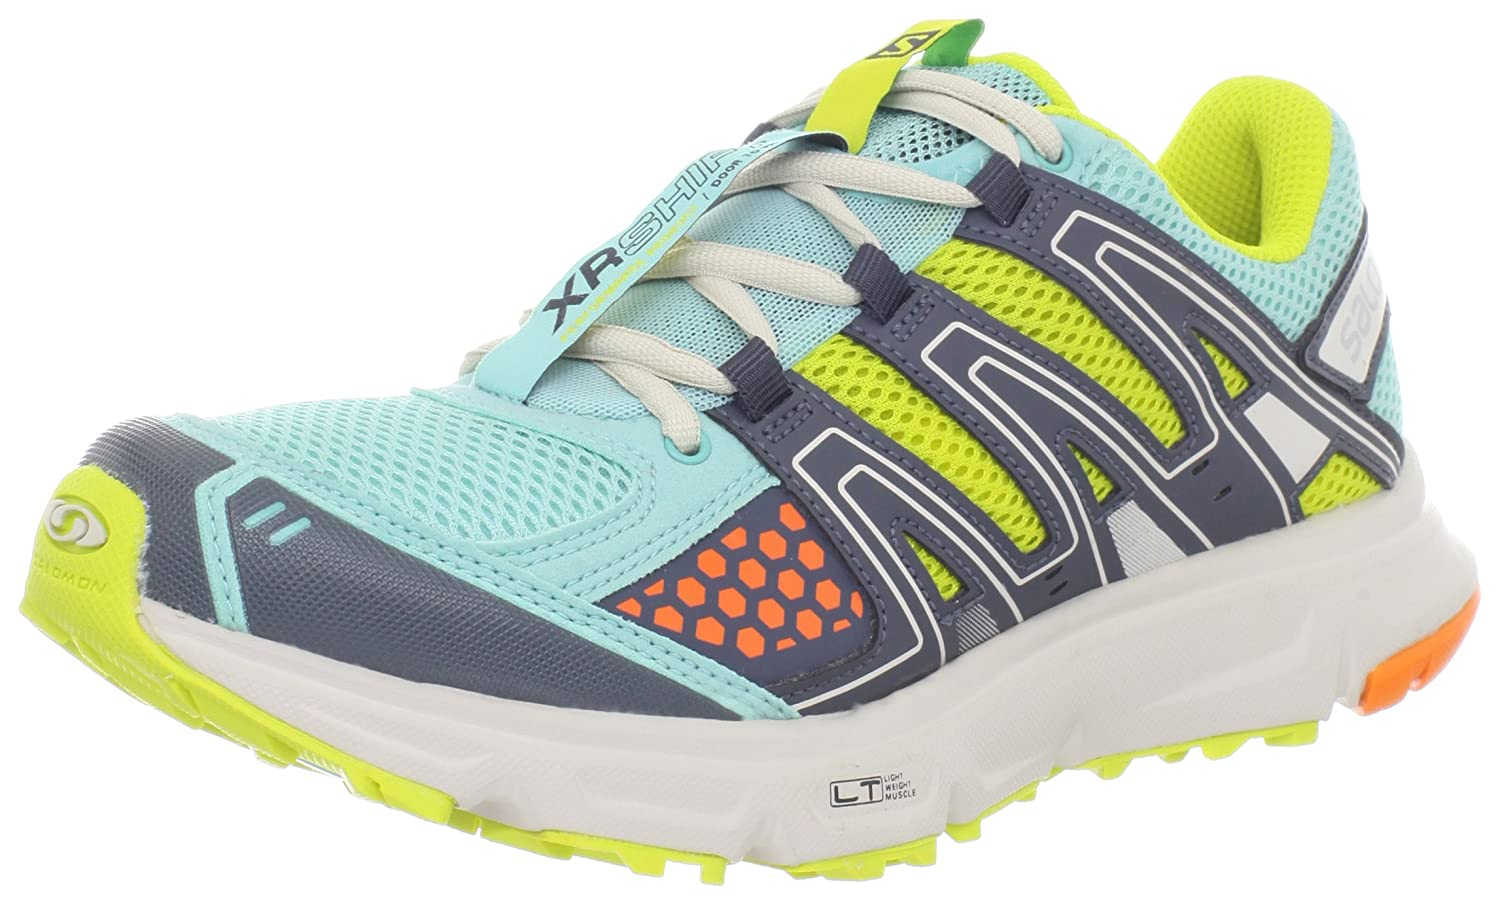 Salomon Damen Xr Shift Sport & Outdoorschuhe blau